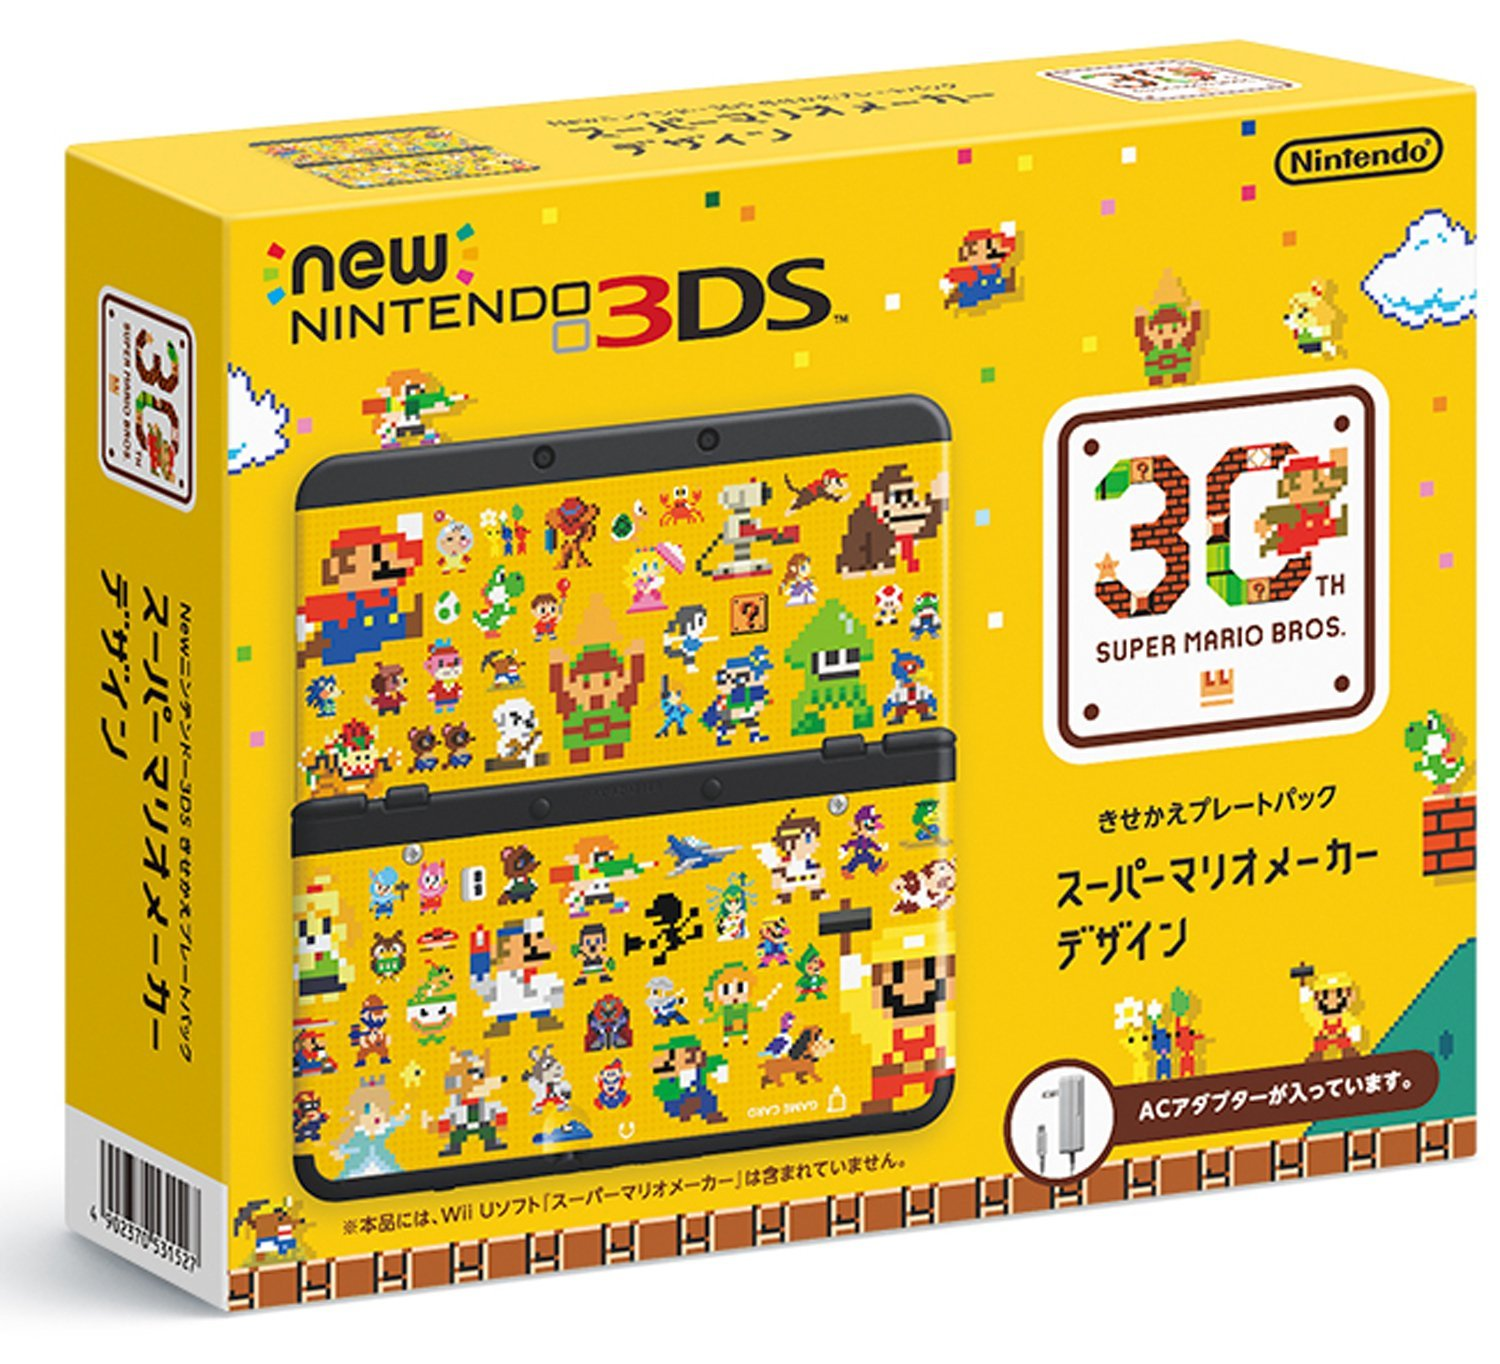 New Nintendo 3DS Customized plate pack Super Mario maker design (Japanese Imported Version - only plays Japanese version games)